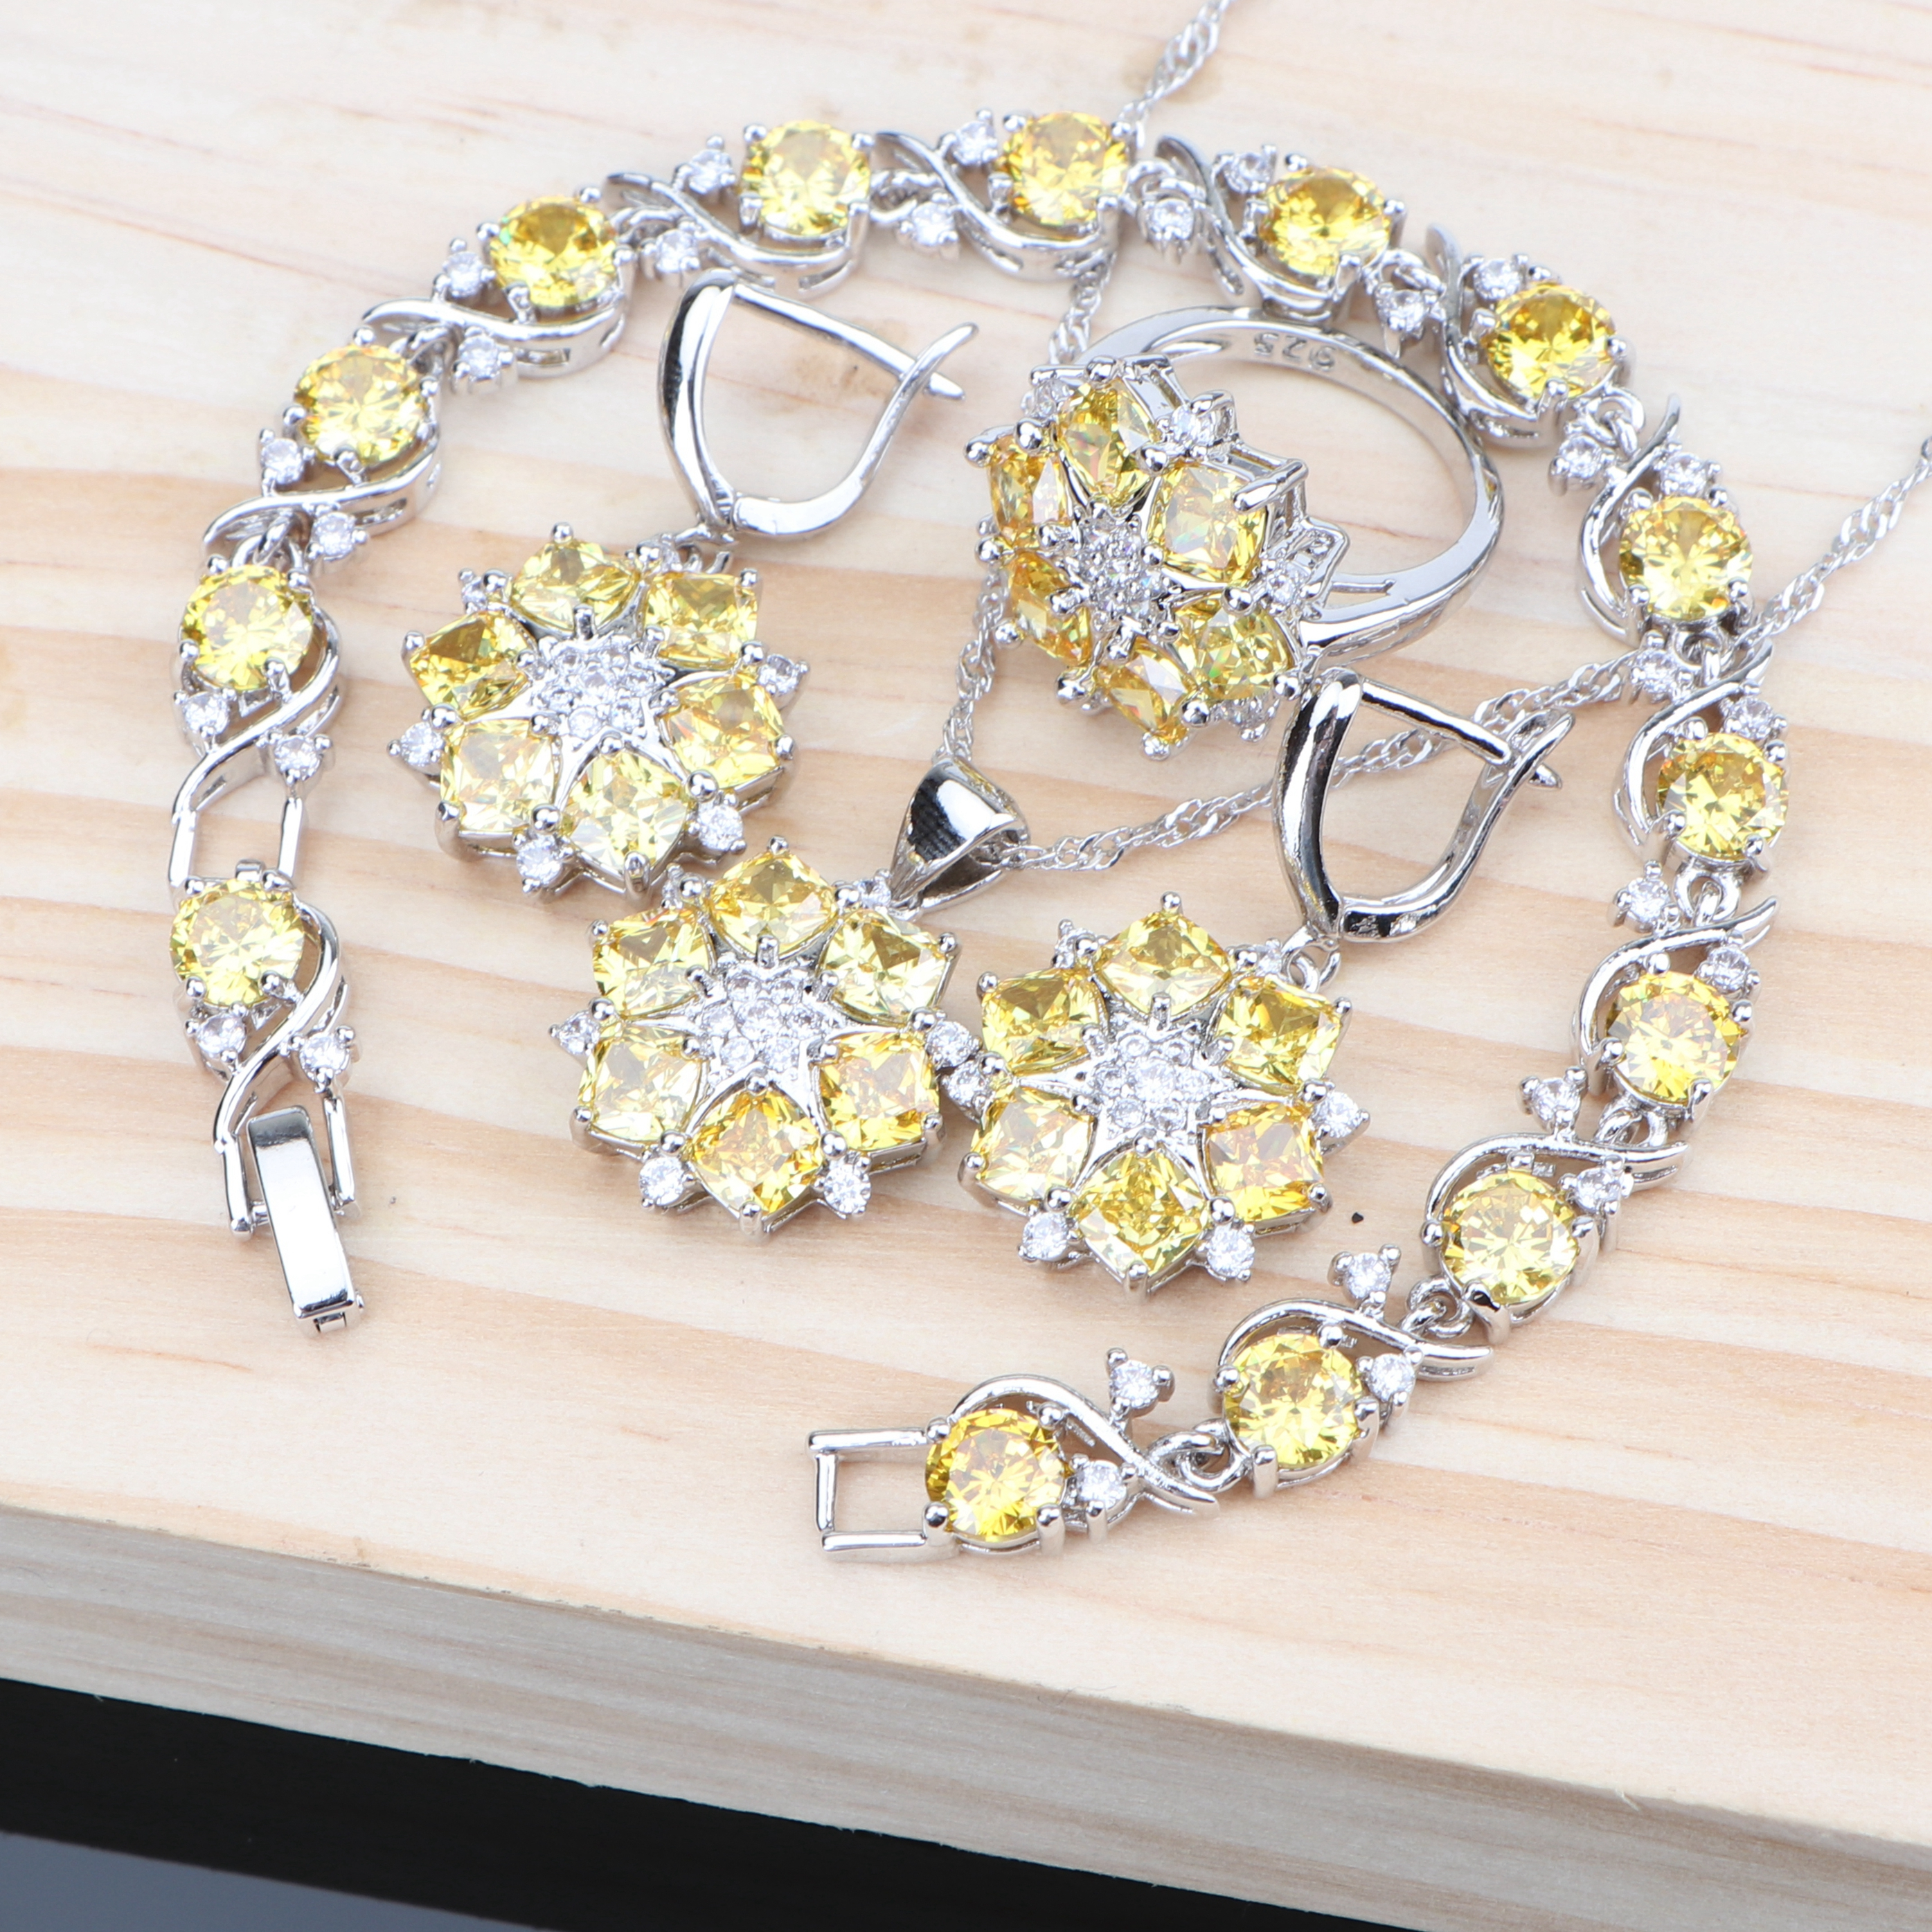 Yellow Zirconia Silver 925 Jewelry Sets Women Bridal Costume Wedding Jewelry With Earrings Bracelet Ring Necklace Pendant Set